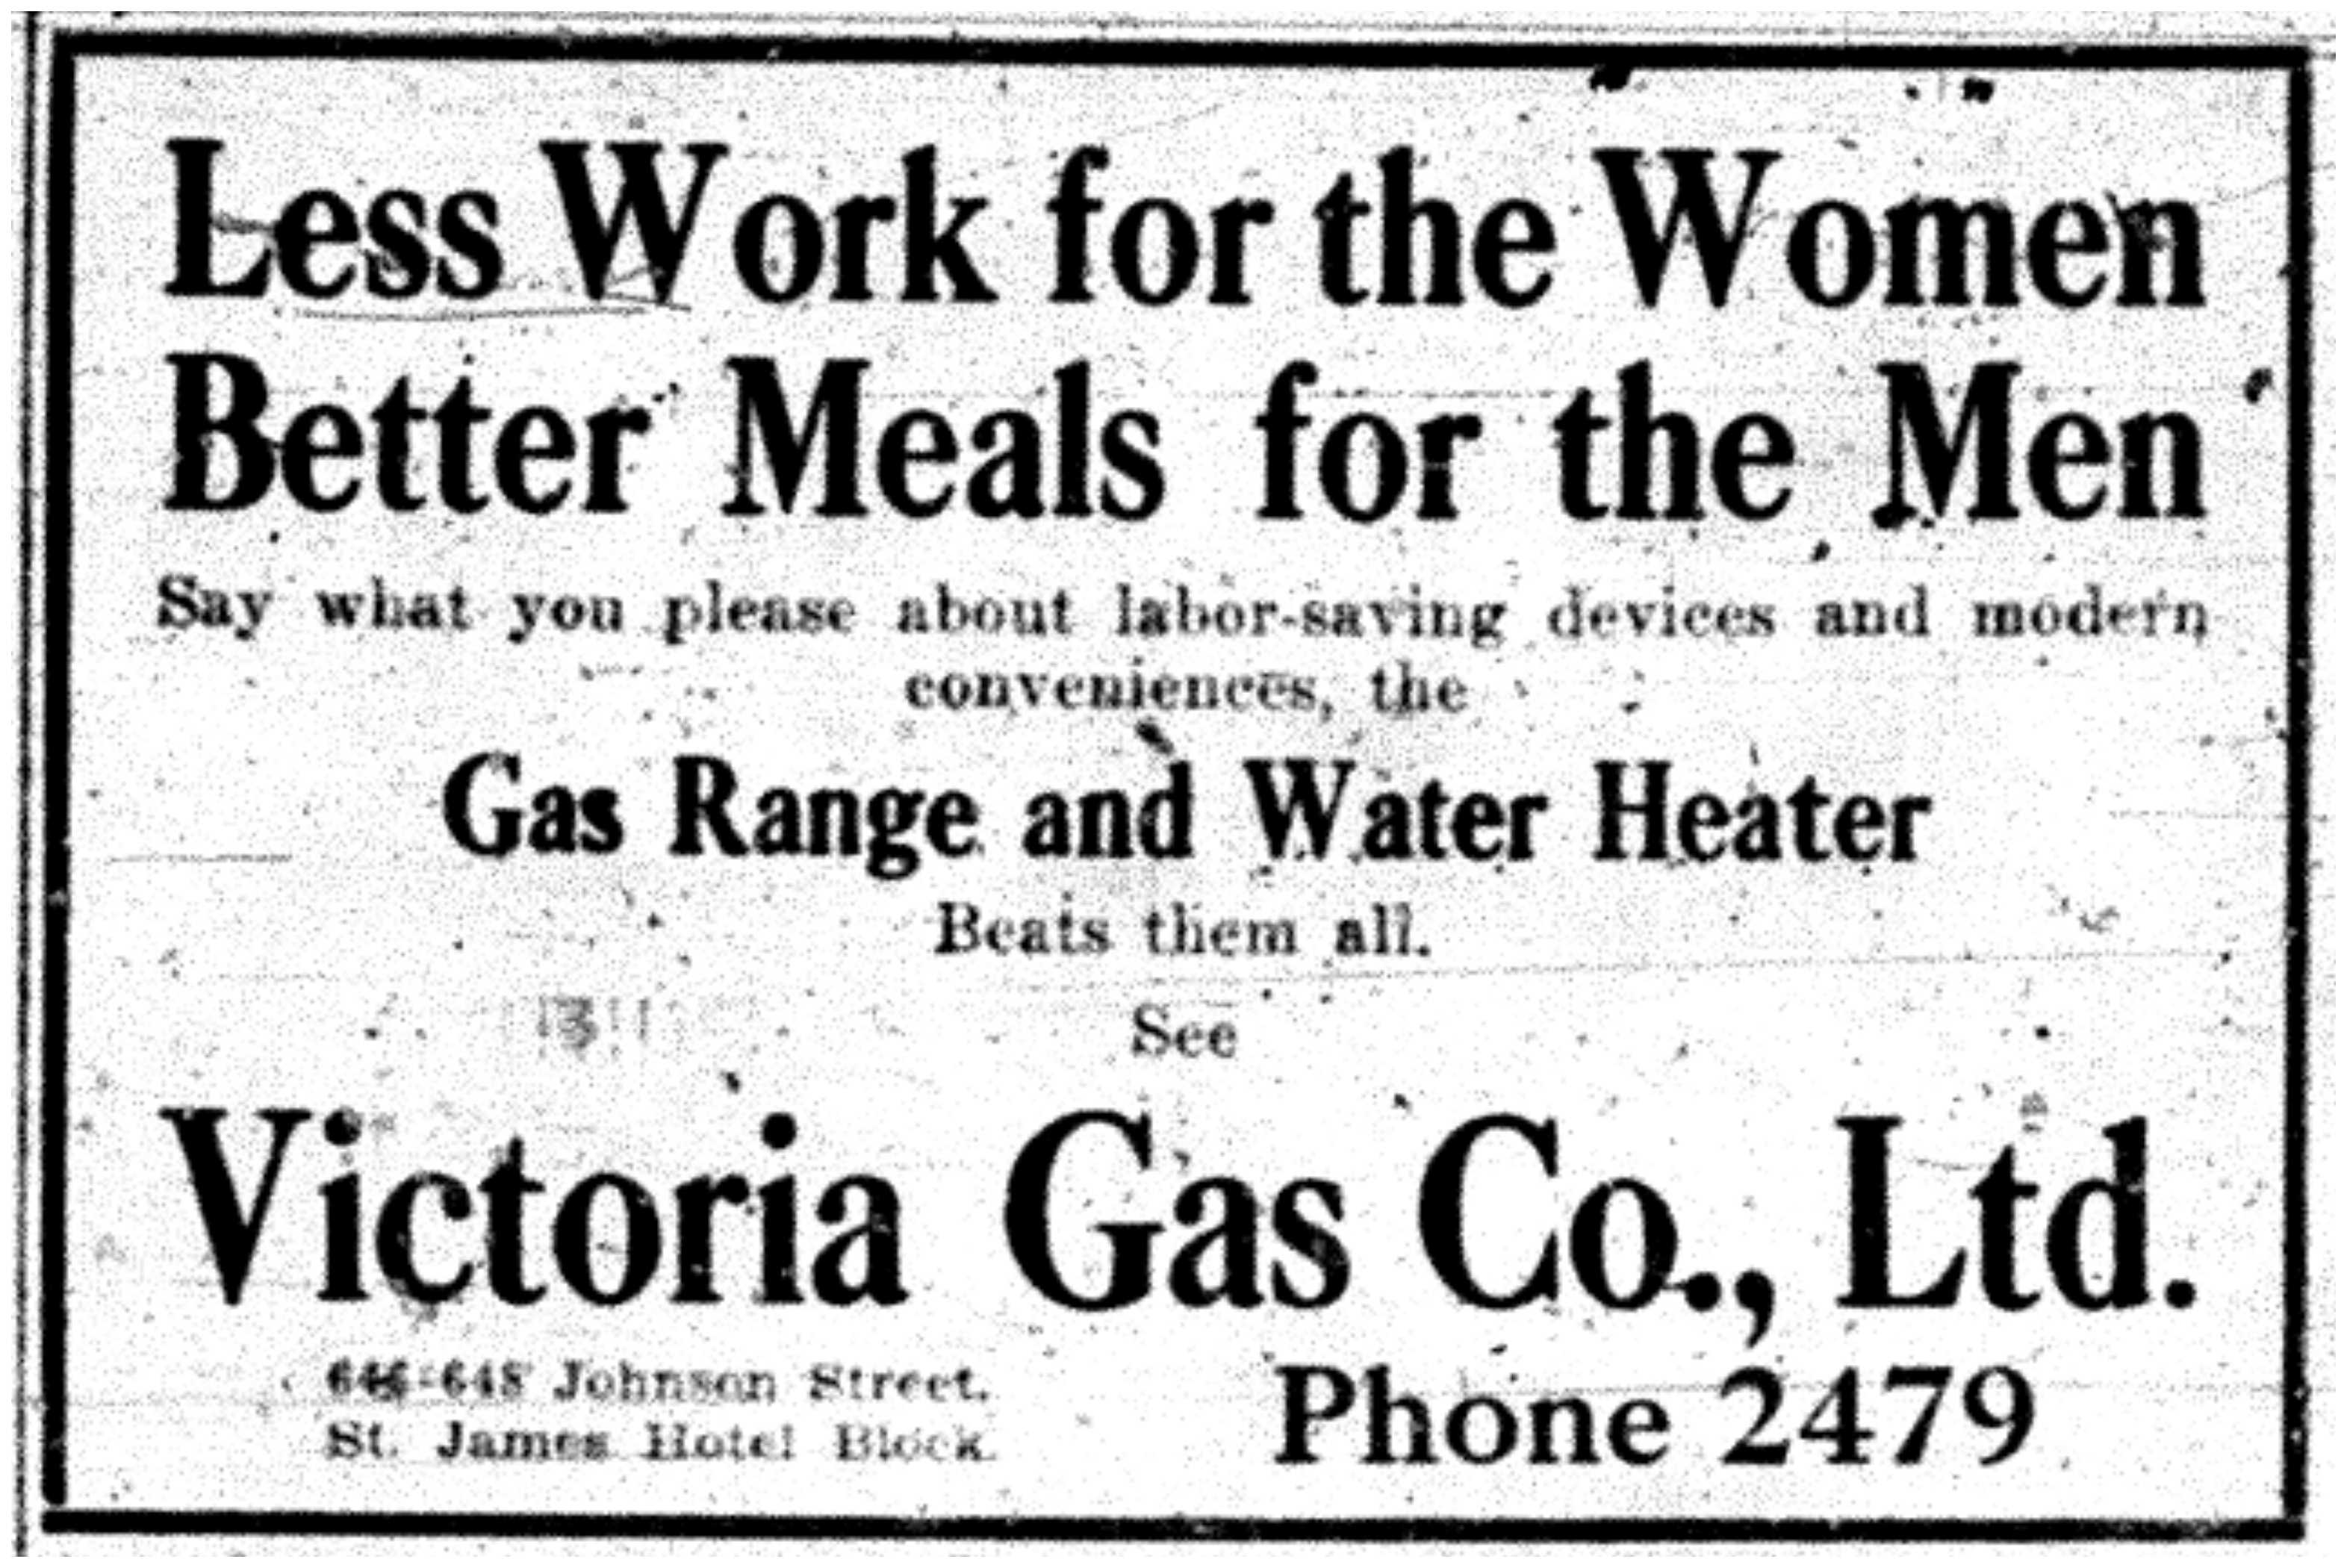 Victoria Gas Co. Ad